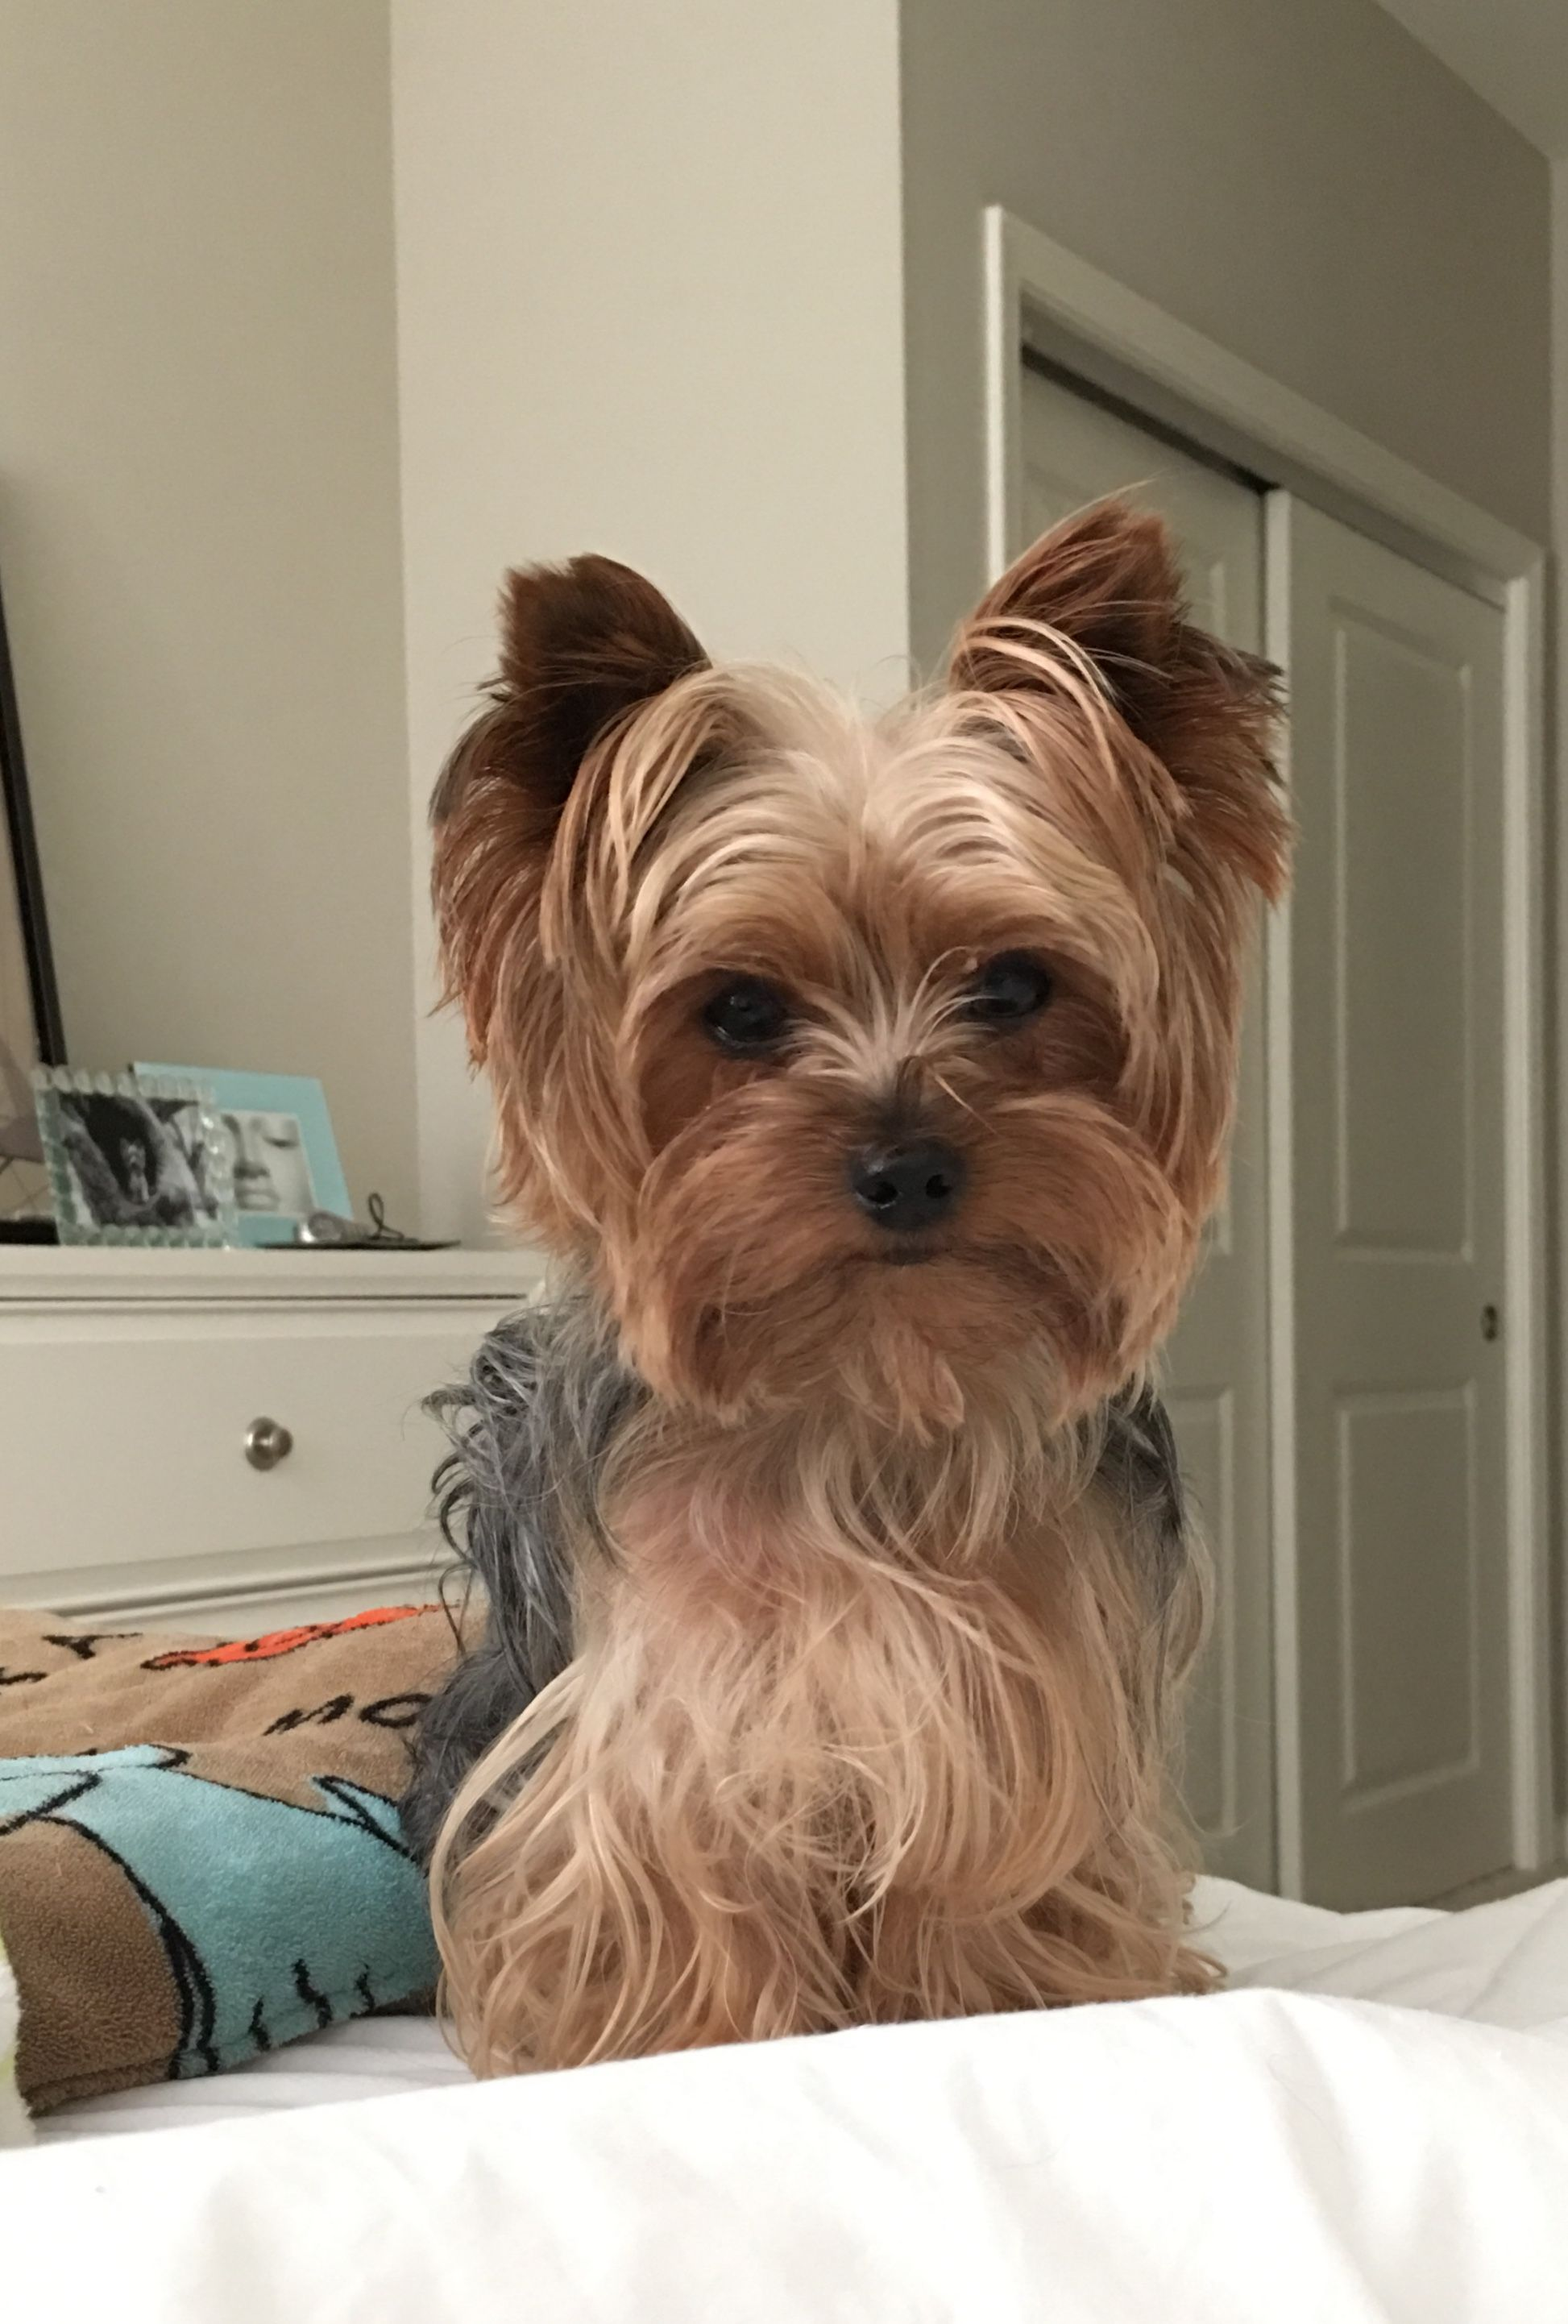 Stevie Yorkie Love Bed Head Yorkie Haircuts Yorkshire Terrier Yorkshire Terrier Puppies